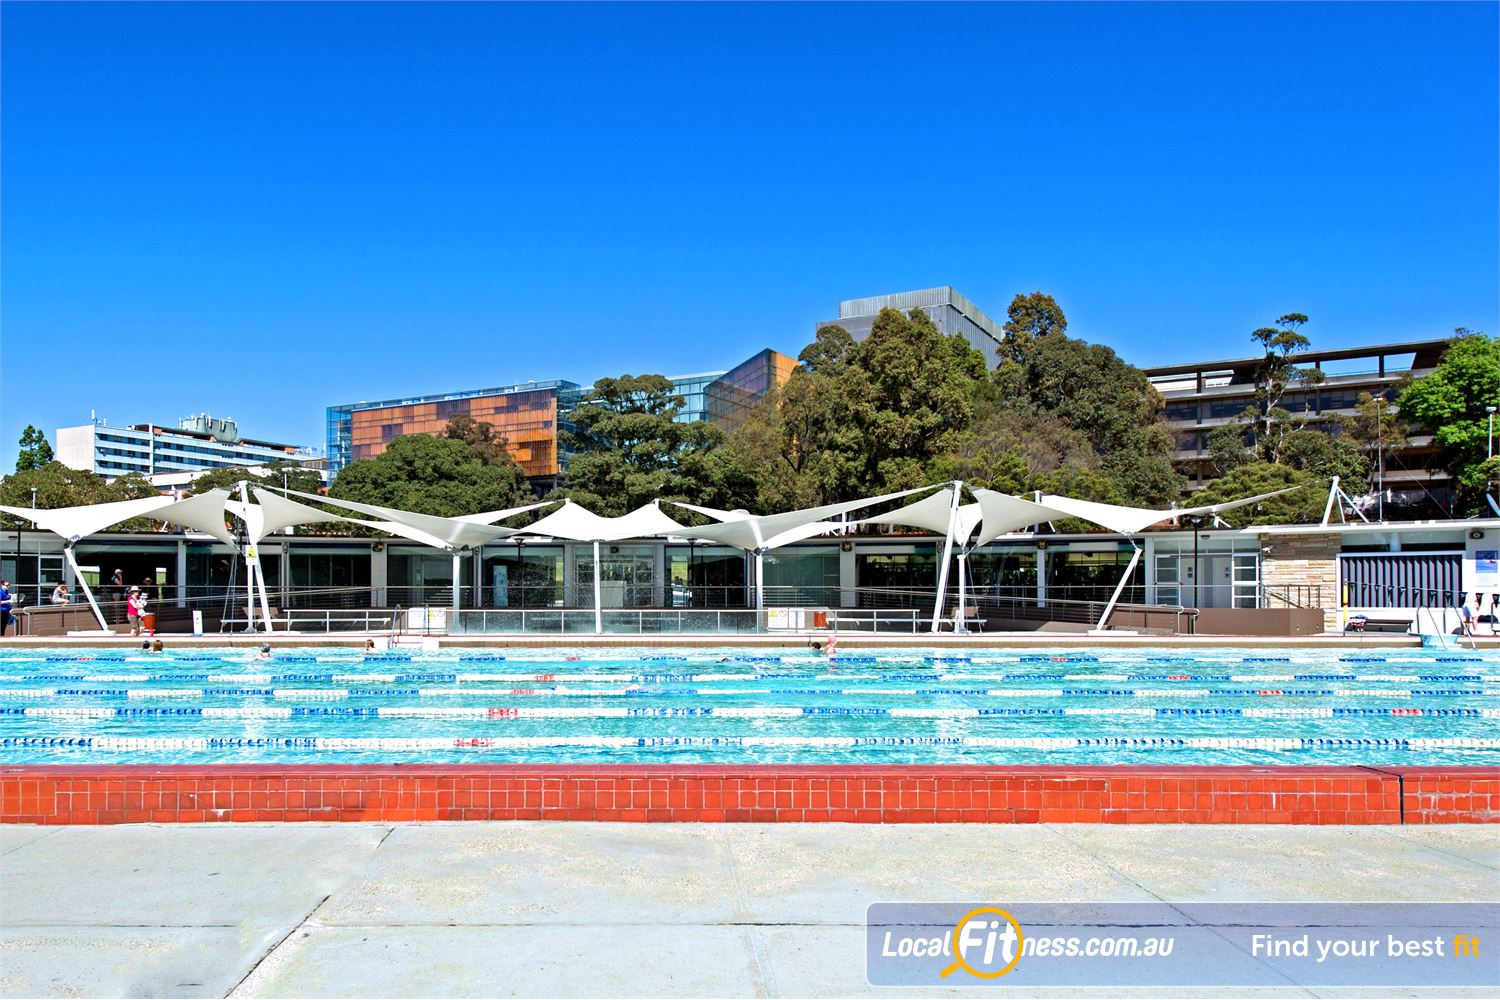 Victoria Park Pool Near Marrickville Lap lane swimming available all year round.